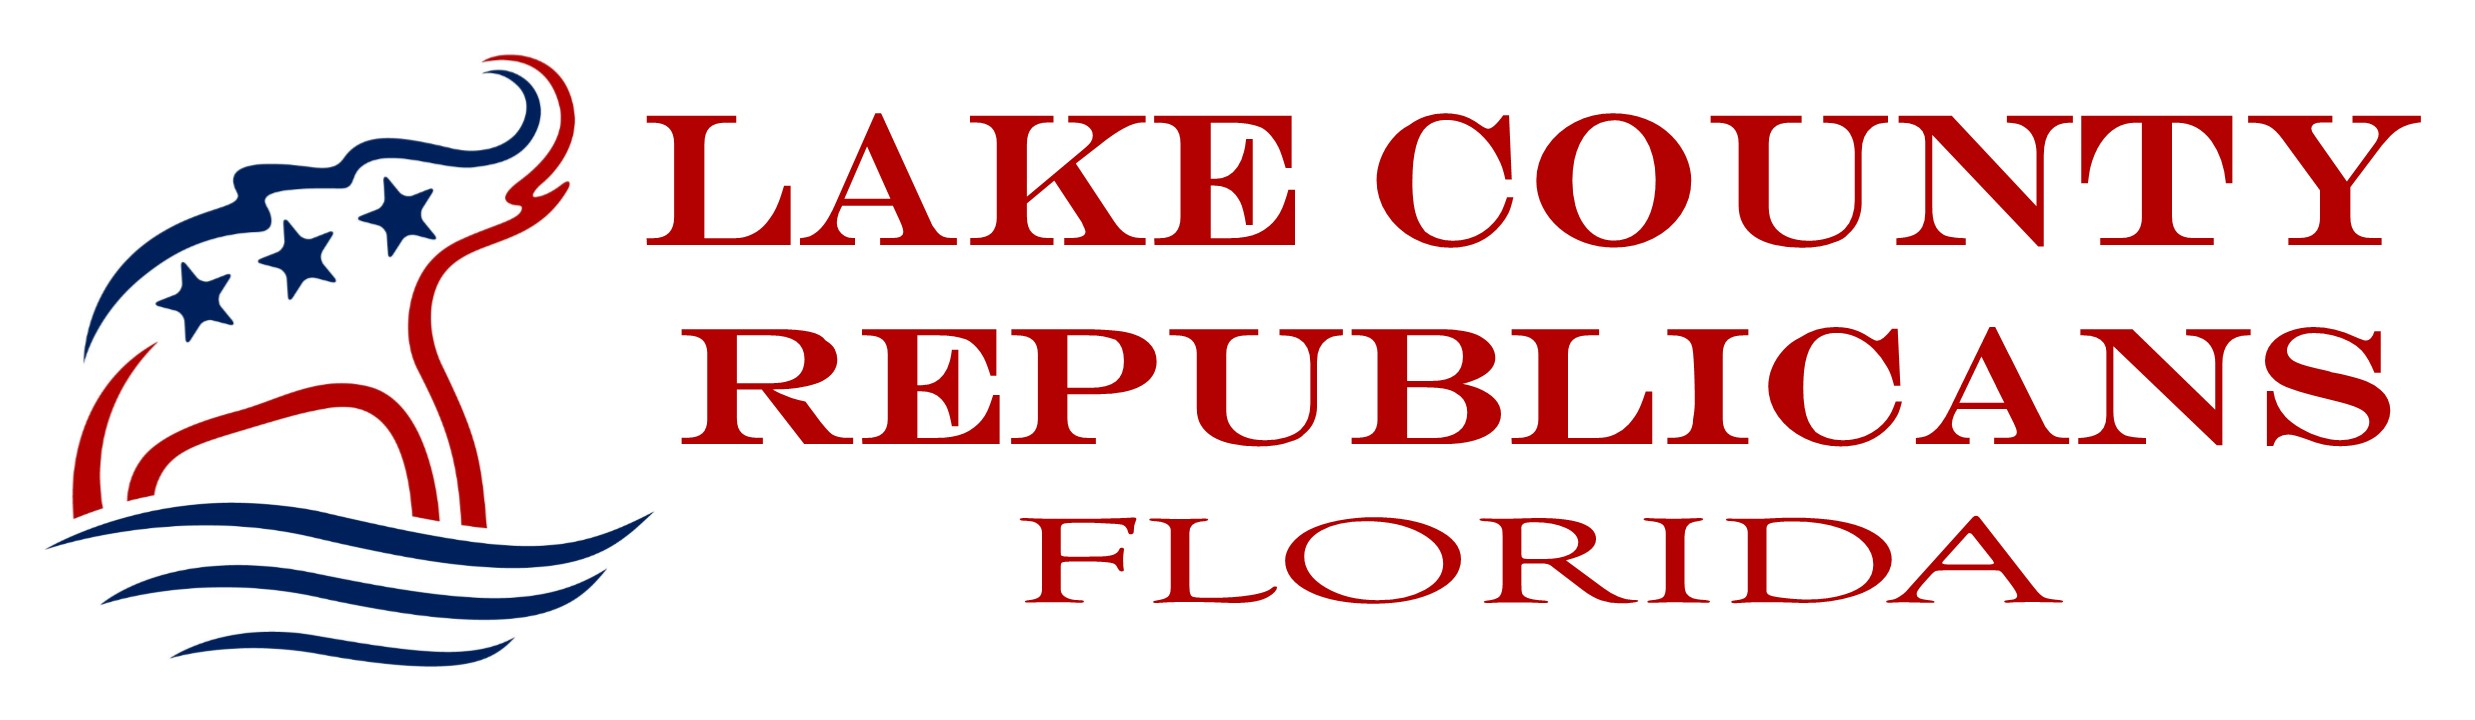 Lake County Republican Party